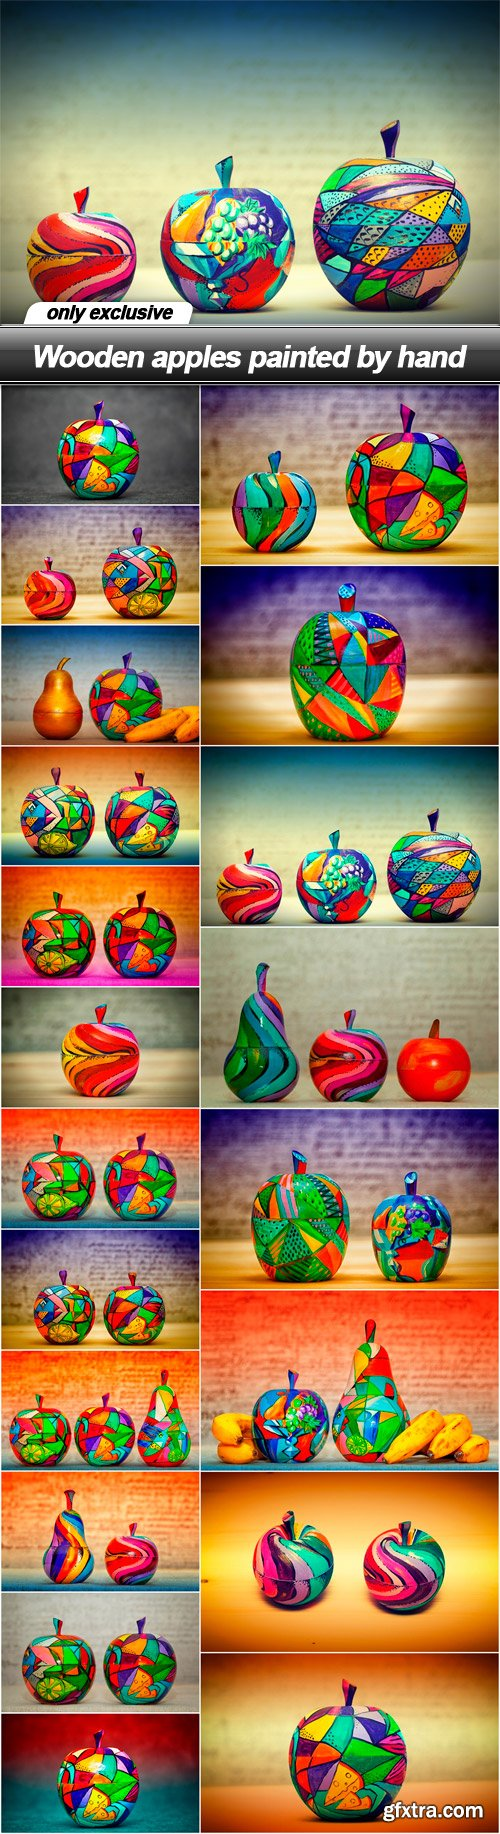 Wooden apples painted by hand - 20 UHQ JPEG